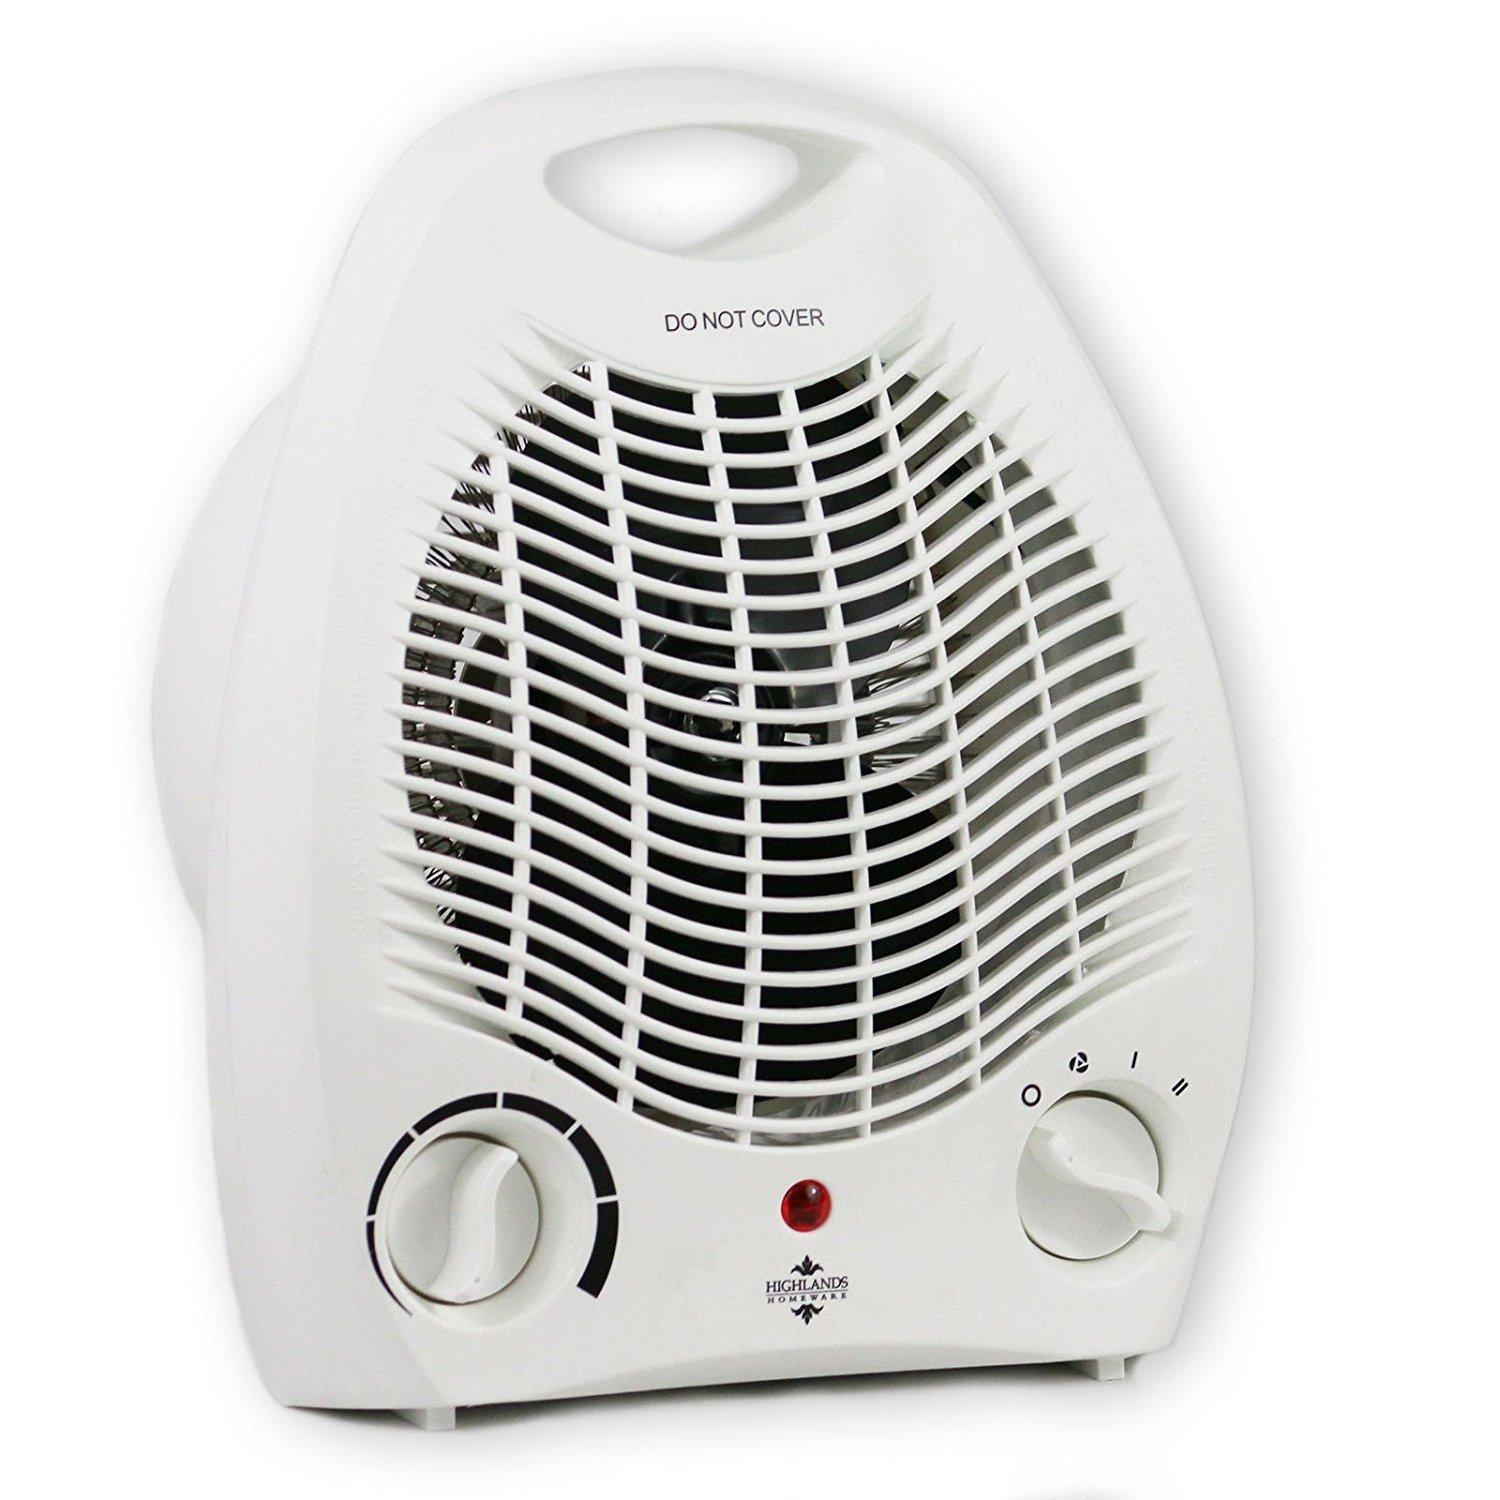 Highlands #HEA03 Portable Fan Heater, 2000 W, White, 220-240V AC 50Hz